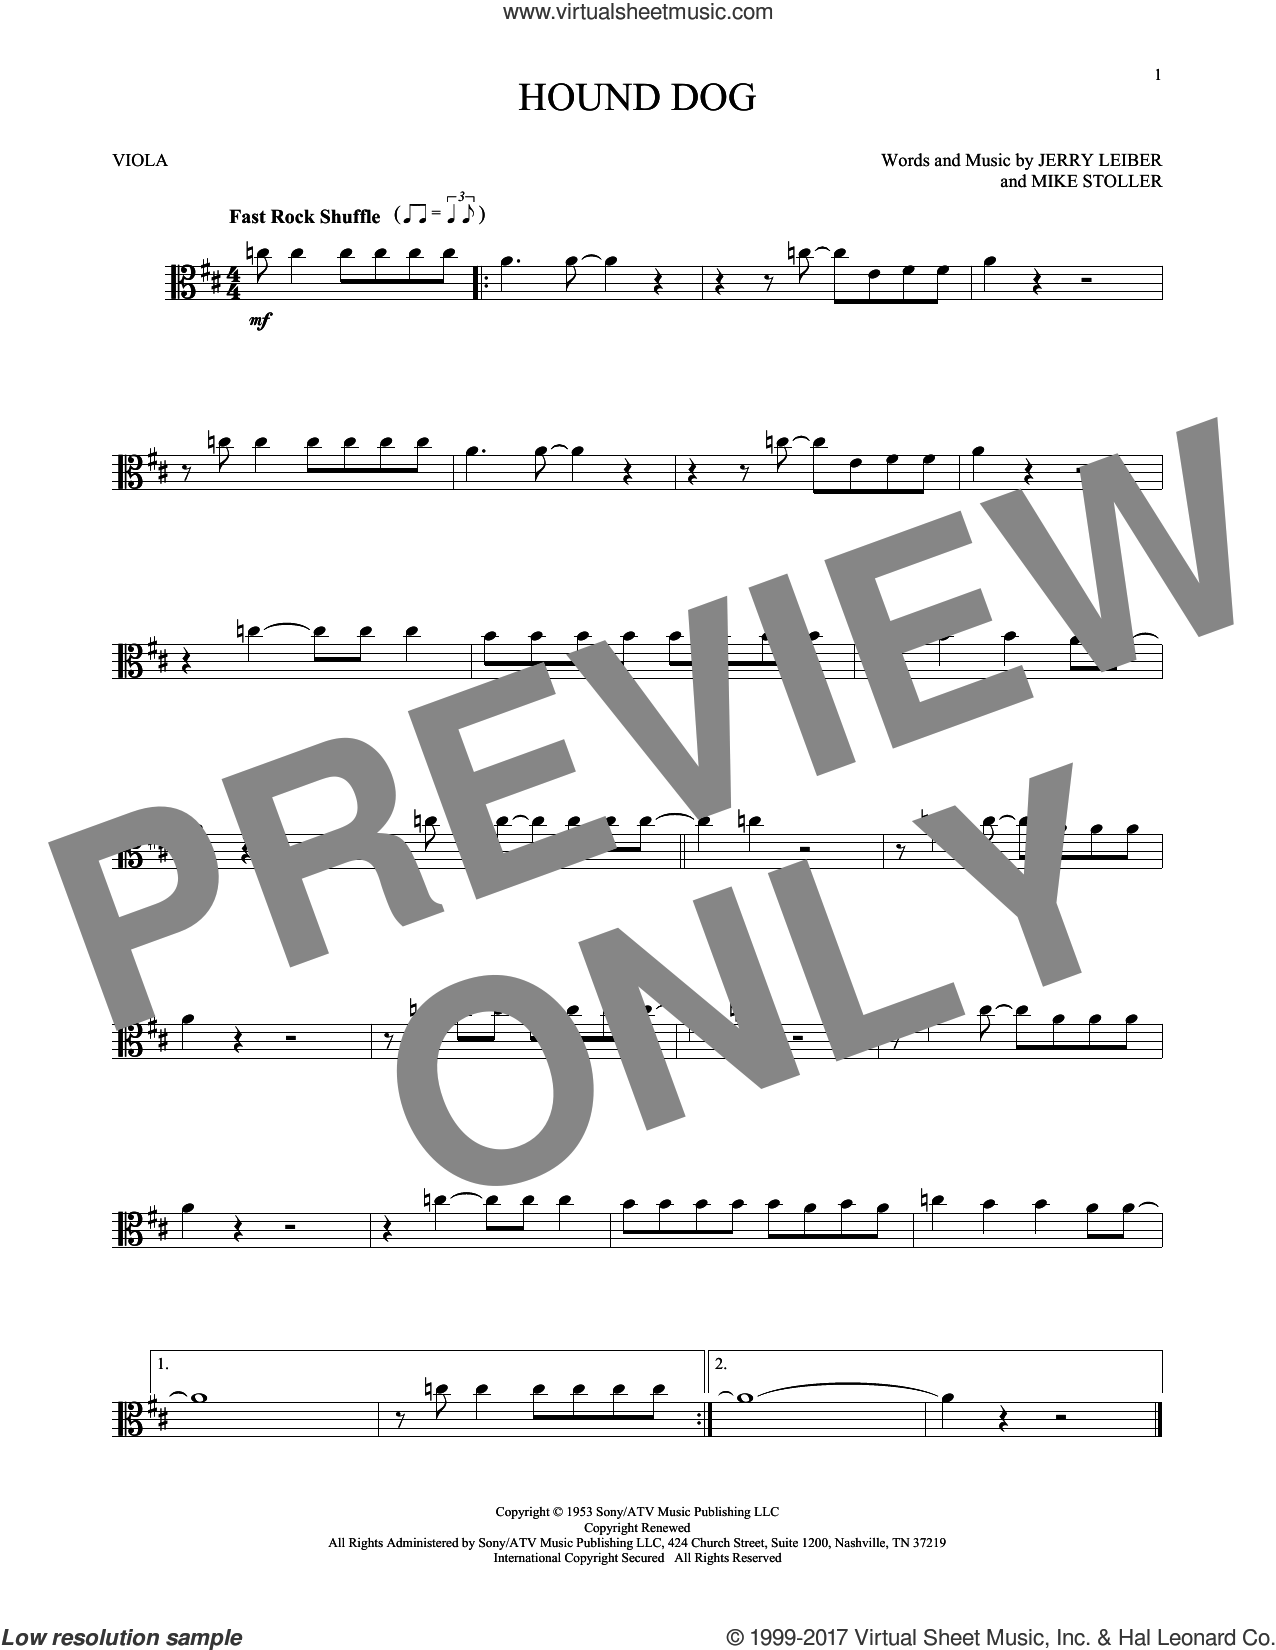 Hound Dog sheet music for viola solo by Elvis Presley, Jerry Leiber and Mike Stoller, intermediate skill level